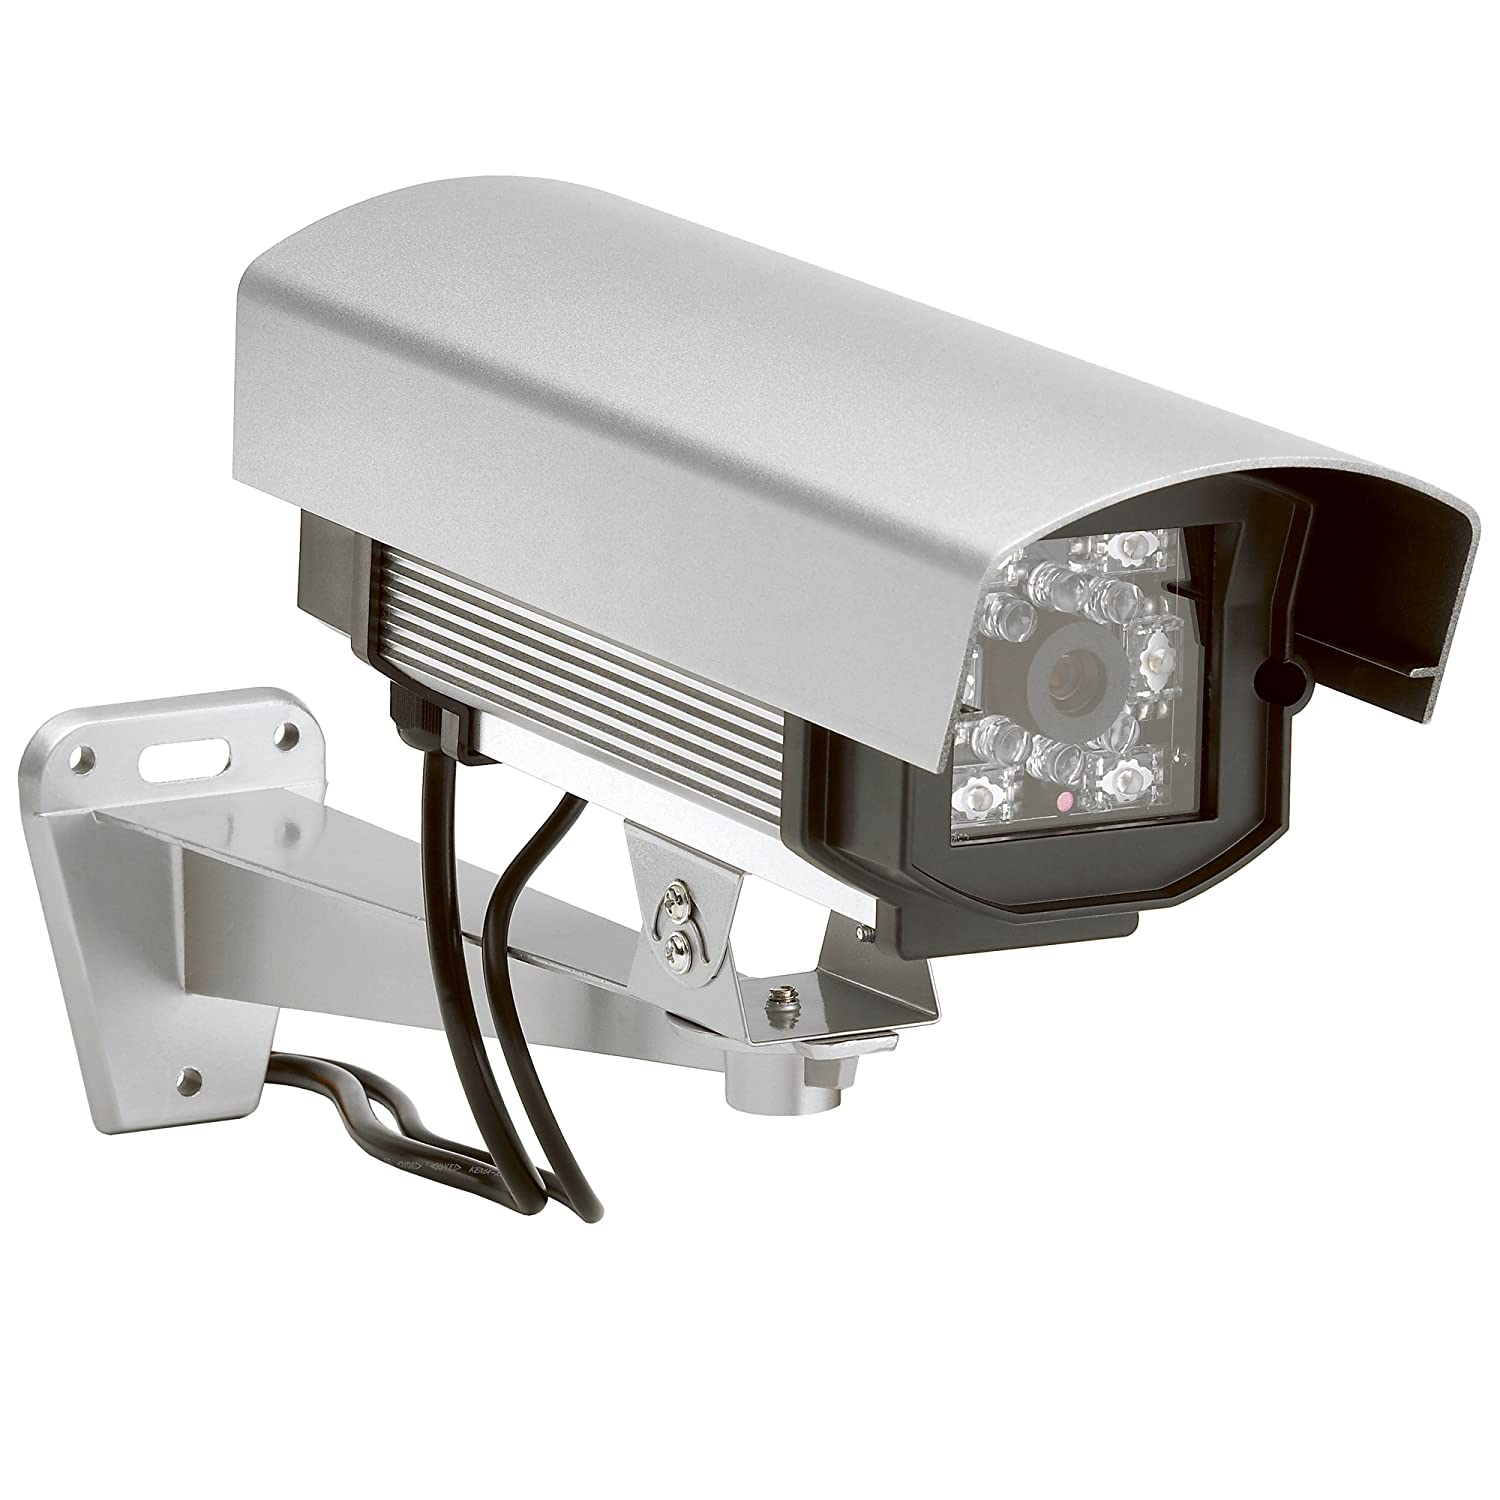 Friedland Response CA5 Professional Heavy Duty Wired Colour CCTV ...